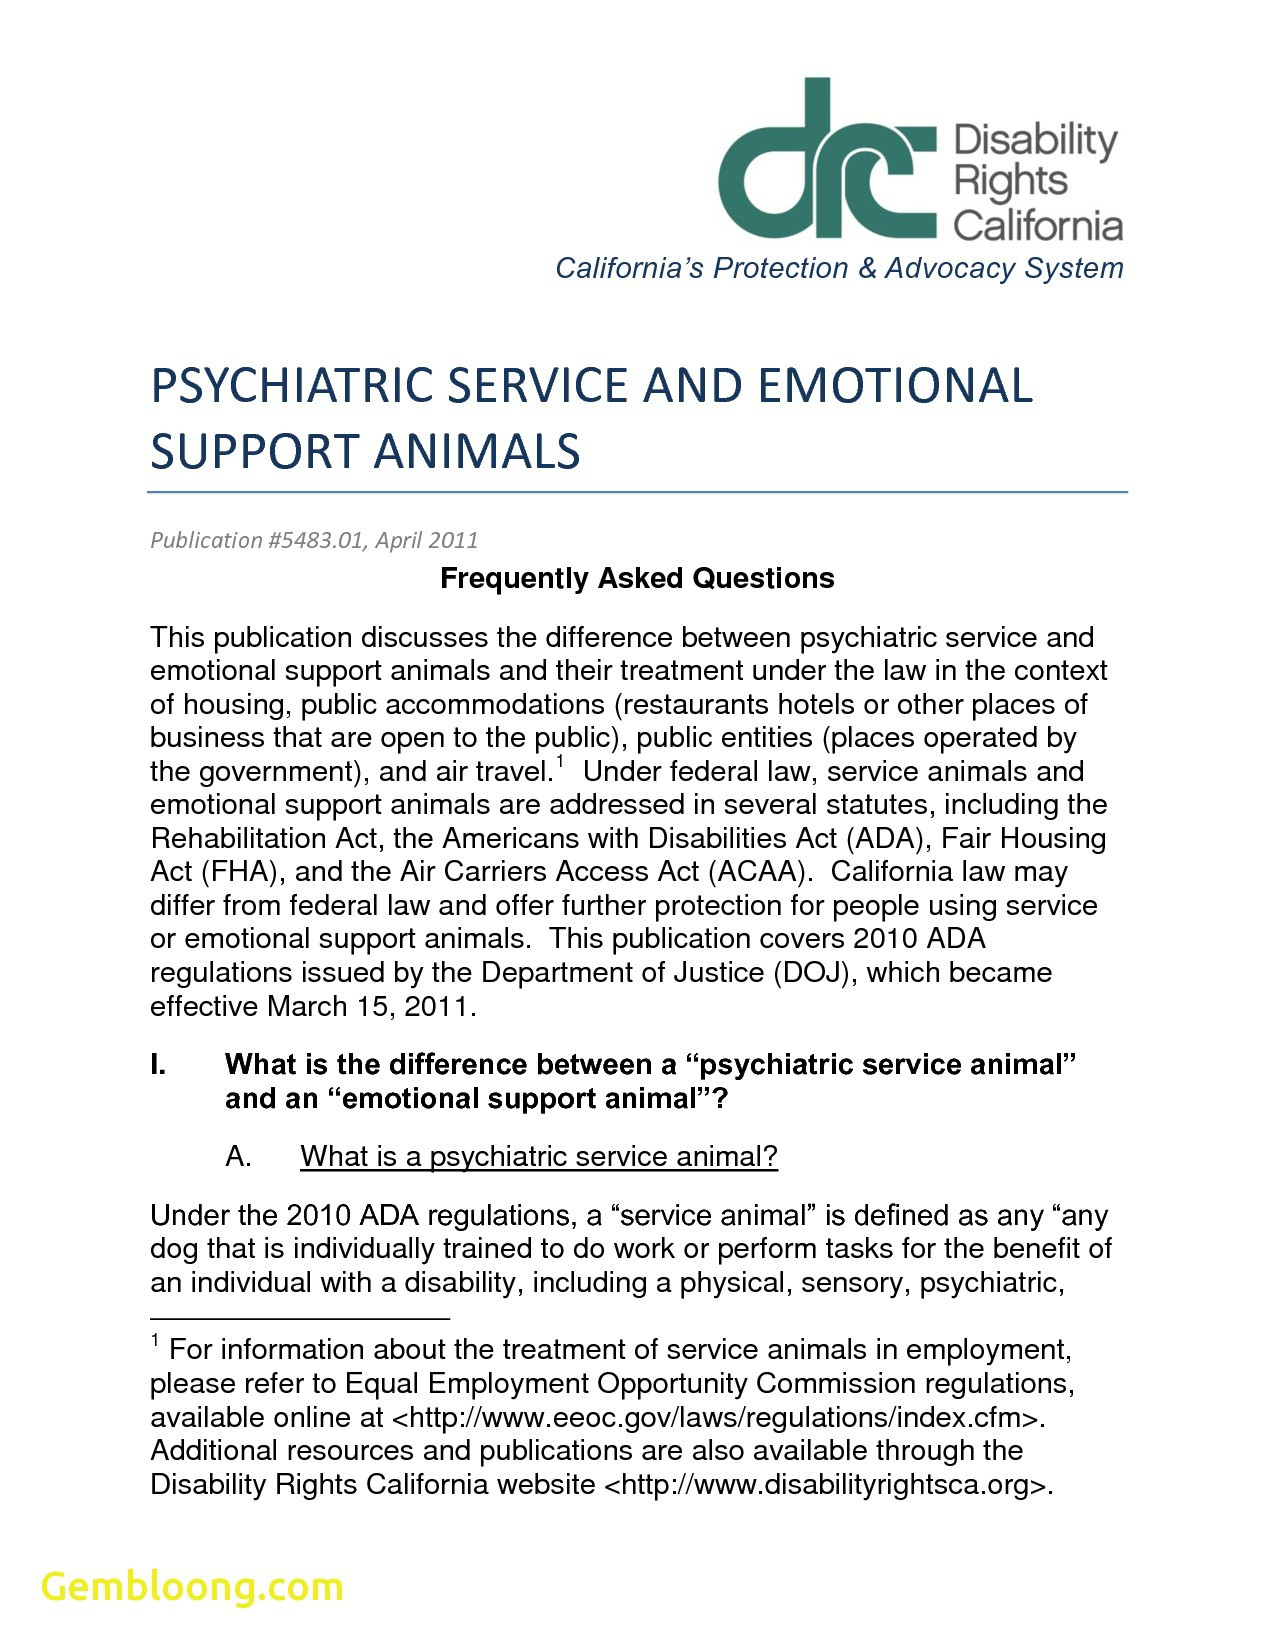 Emotional Support Letter Template - Staggering Emotional assistance Animal Letter